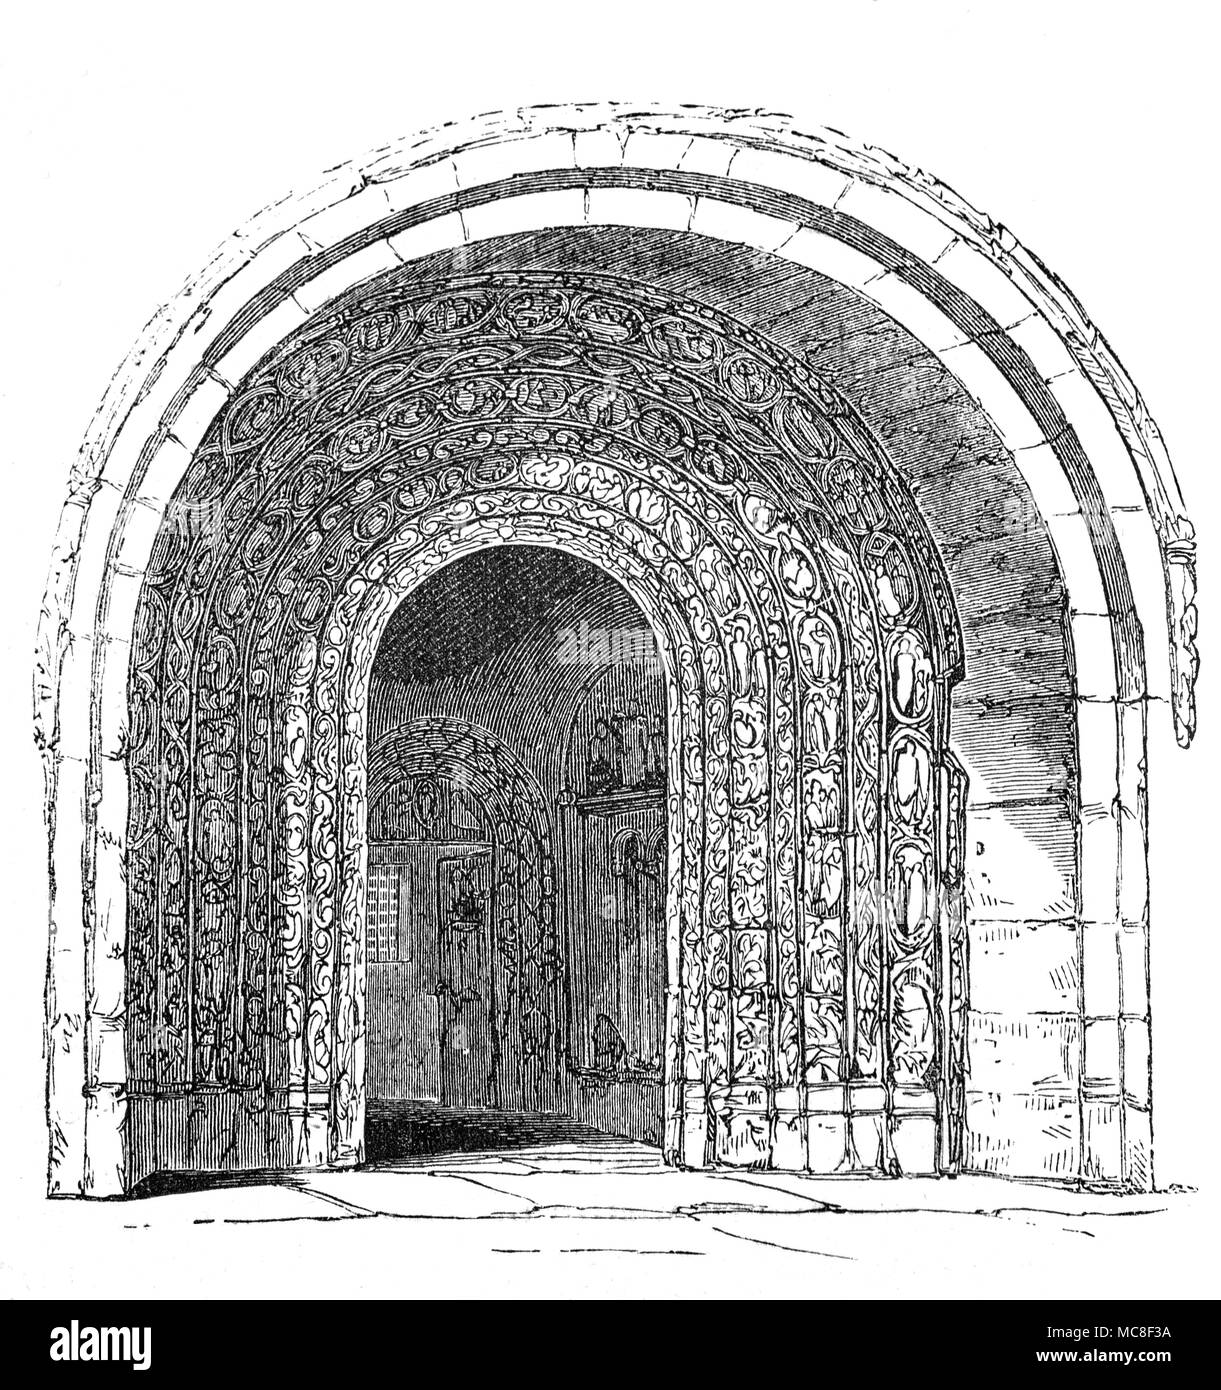 The Romanesque porch and door of Malmesbury Abbey, in Wiltshire, England, one of the few English houses with a continuous history from the 7th century through to the Dissolution of the Monasteries. The Abbey was founded as a Benedictine monastery around 676 by the scholar-poet Aldhelm, a nephew of King Ine of Wessex. The current Abbey was substantially completed by 1180 but its tower collapsed in a storm around 1500 destroying much of the church, including two thirds of the nave and the transept. - Stock Image